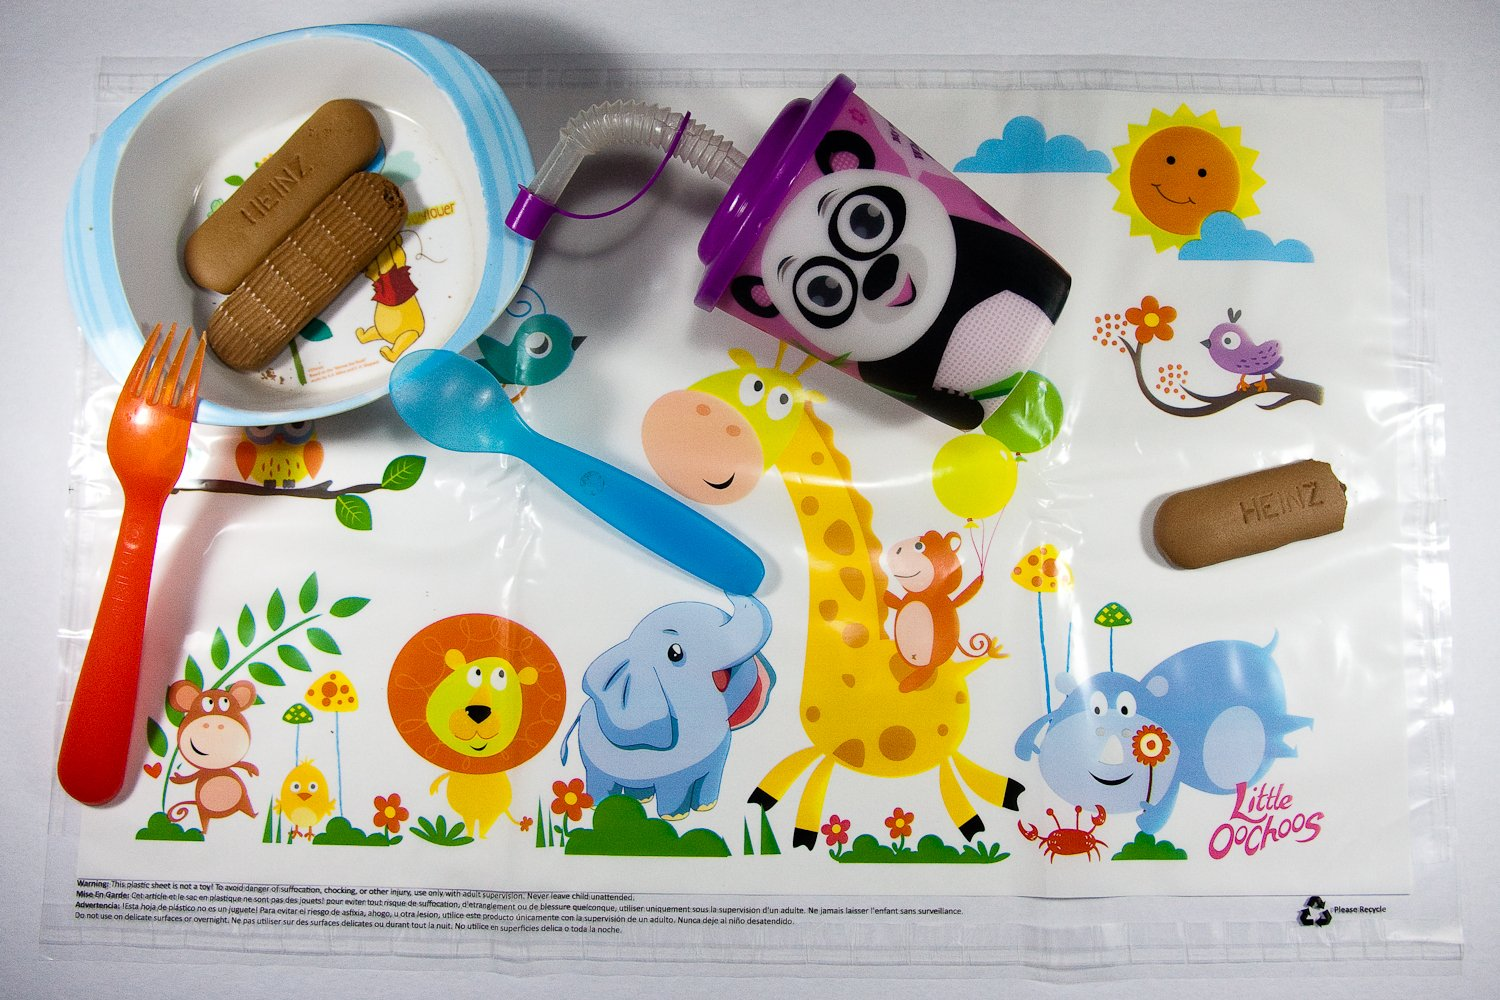 Disposable Placemats Table Topper 60 Mats for Children Kids Toddlers Baby perfect to use as Restaurants Place mats BPA Free Eco Friendly Sticks to Table Avoid Germs Fun Animal Designs Keep Neat Now!